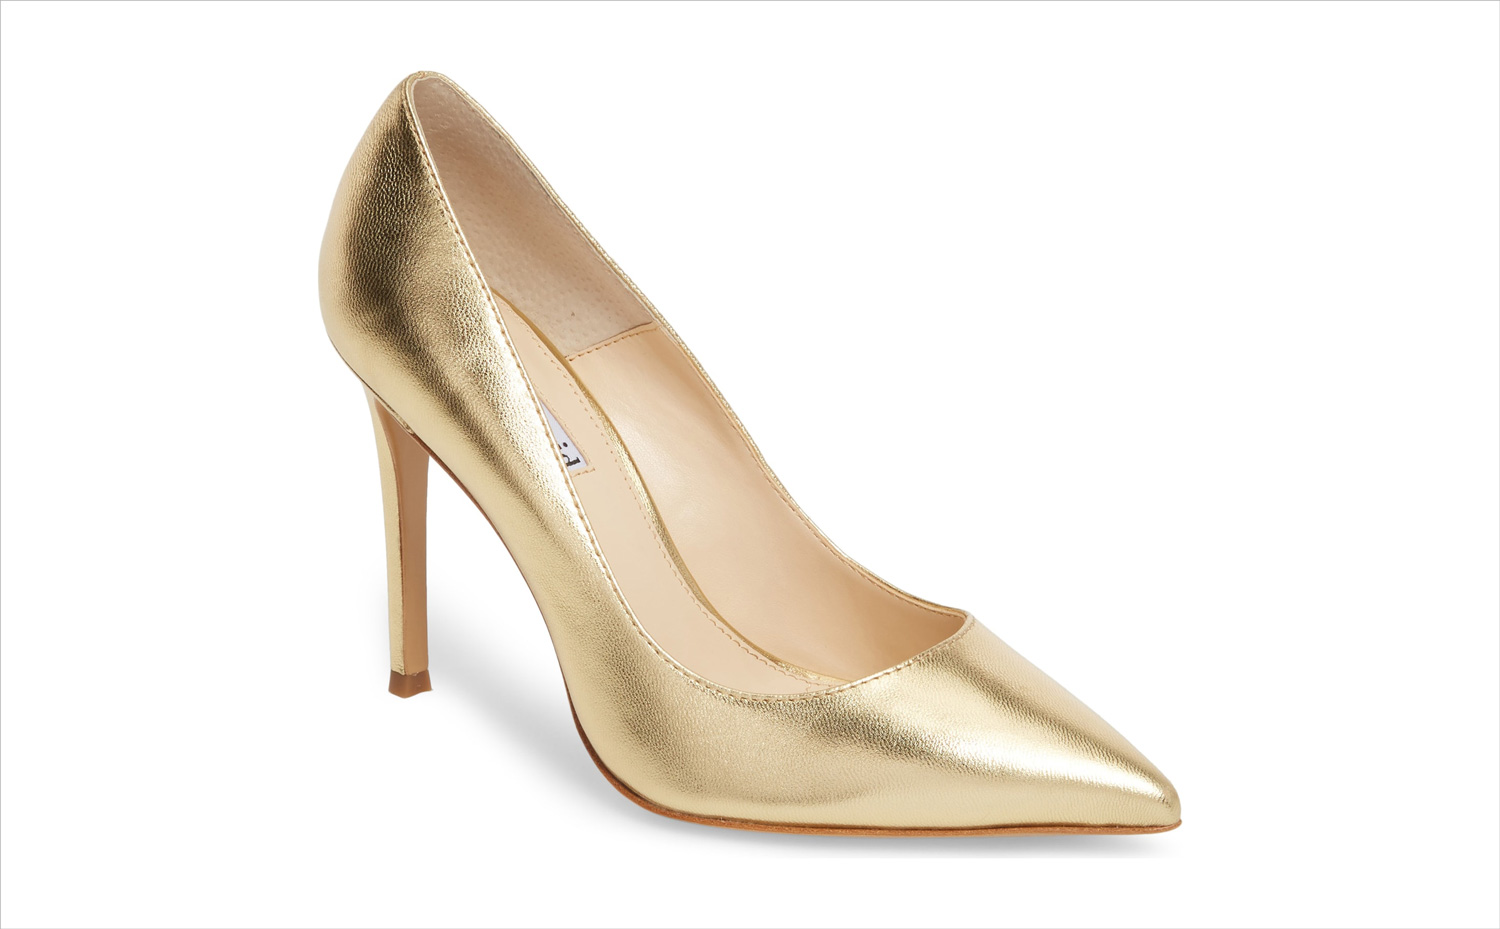 Nordstrom anniversary sale gold calessi pointy toe pump heel by charles david wedding shoe ideas